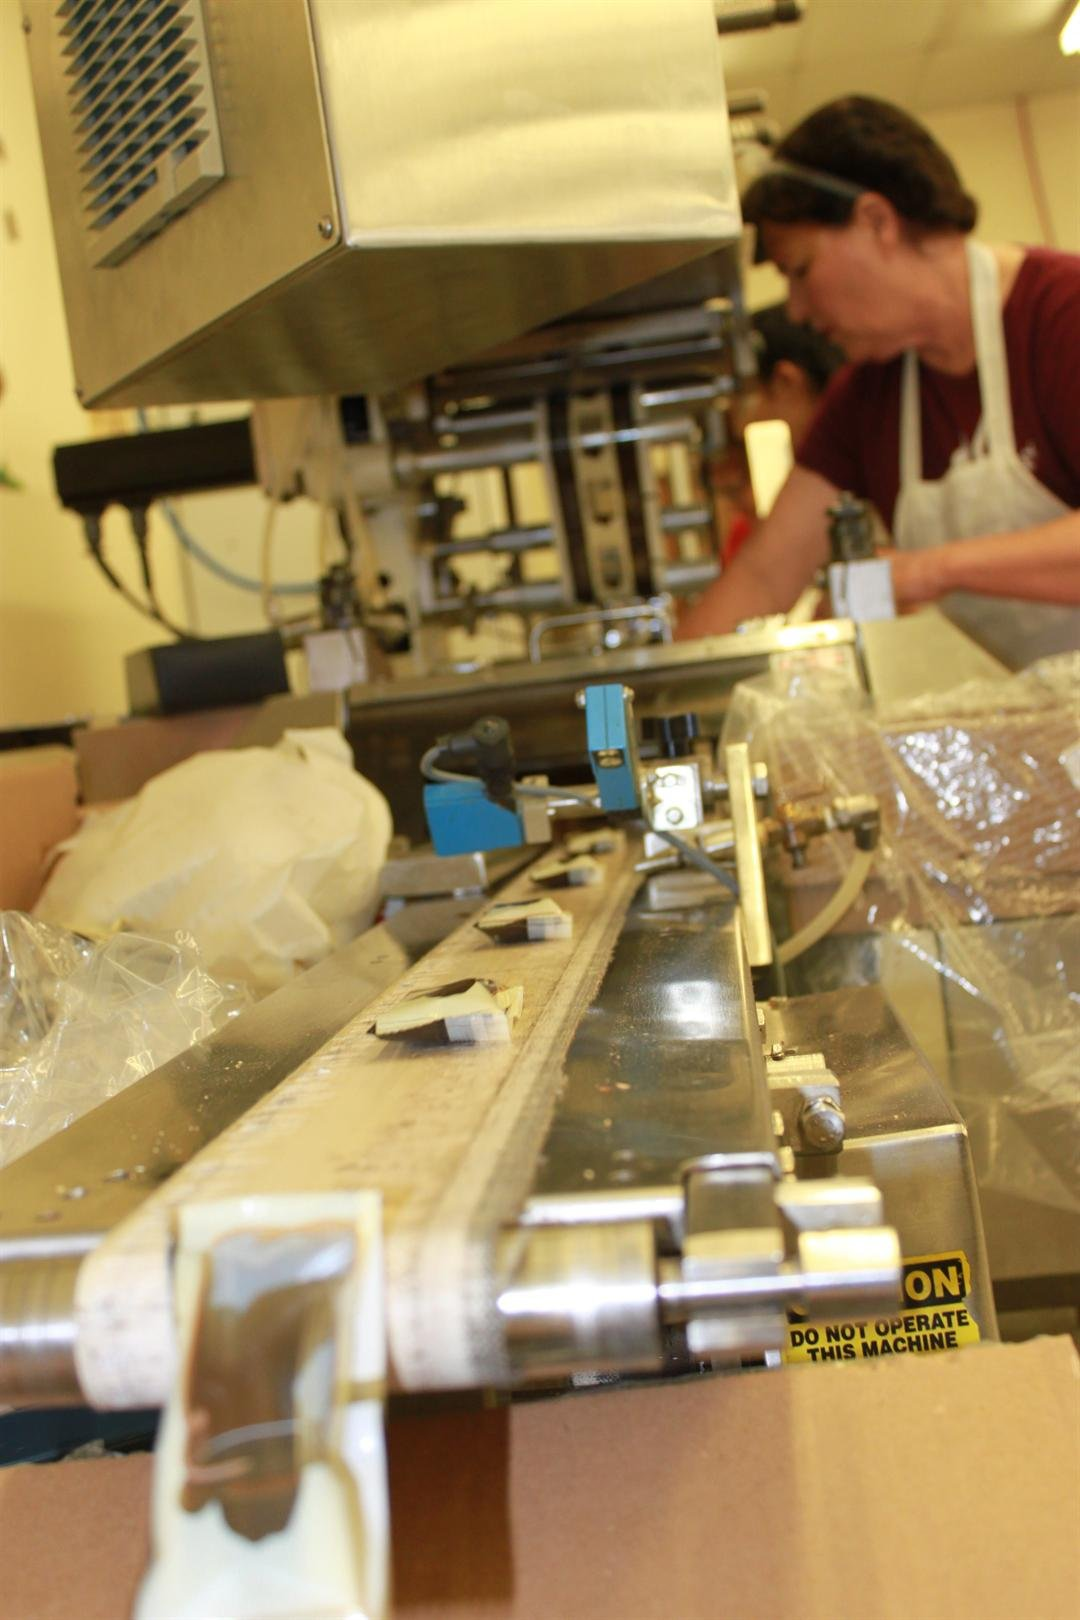 Dark chocolate boot-shaped chocolates coming down the conveyor belt at Cerreta Candy Company. (Source: City of Glendale)